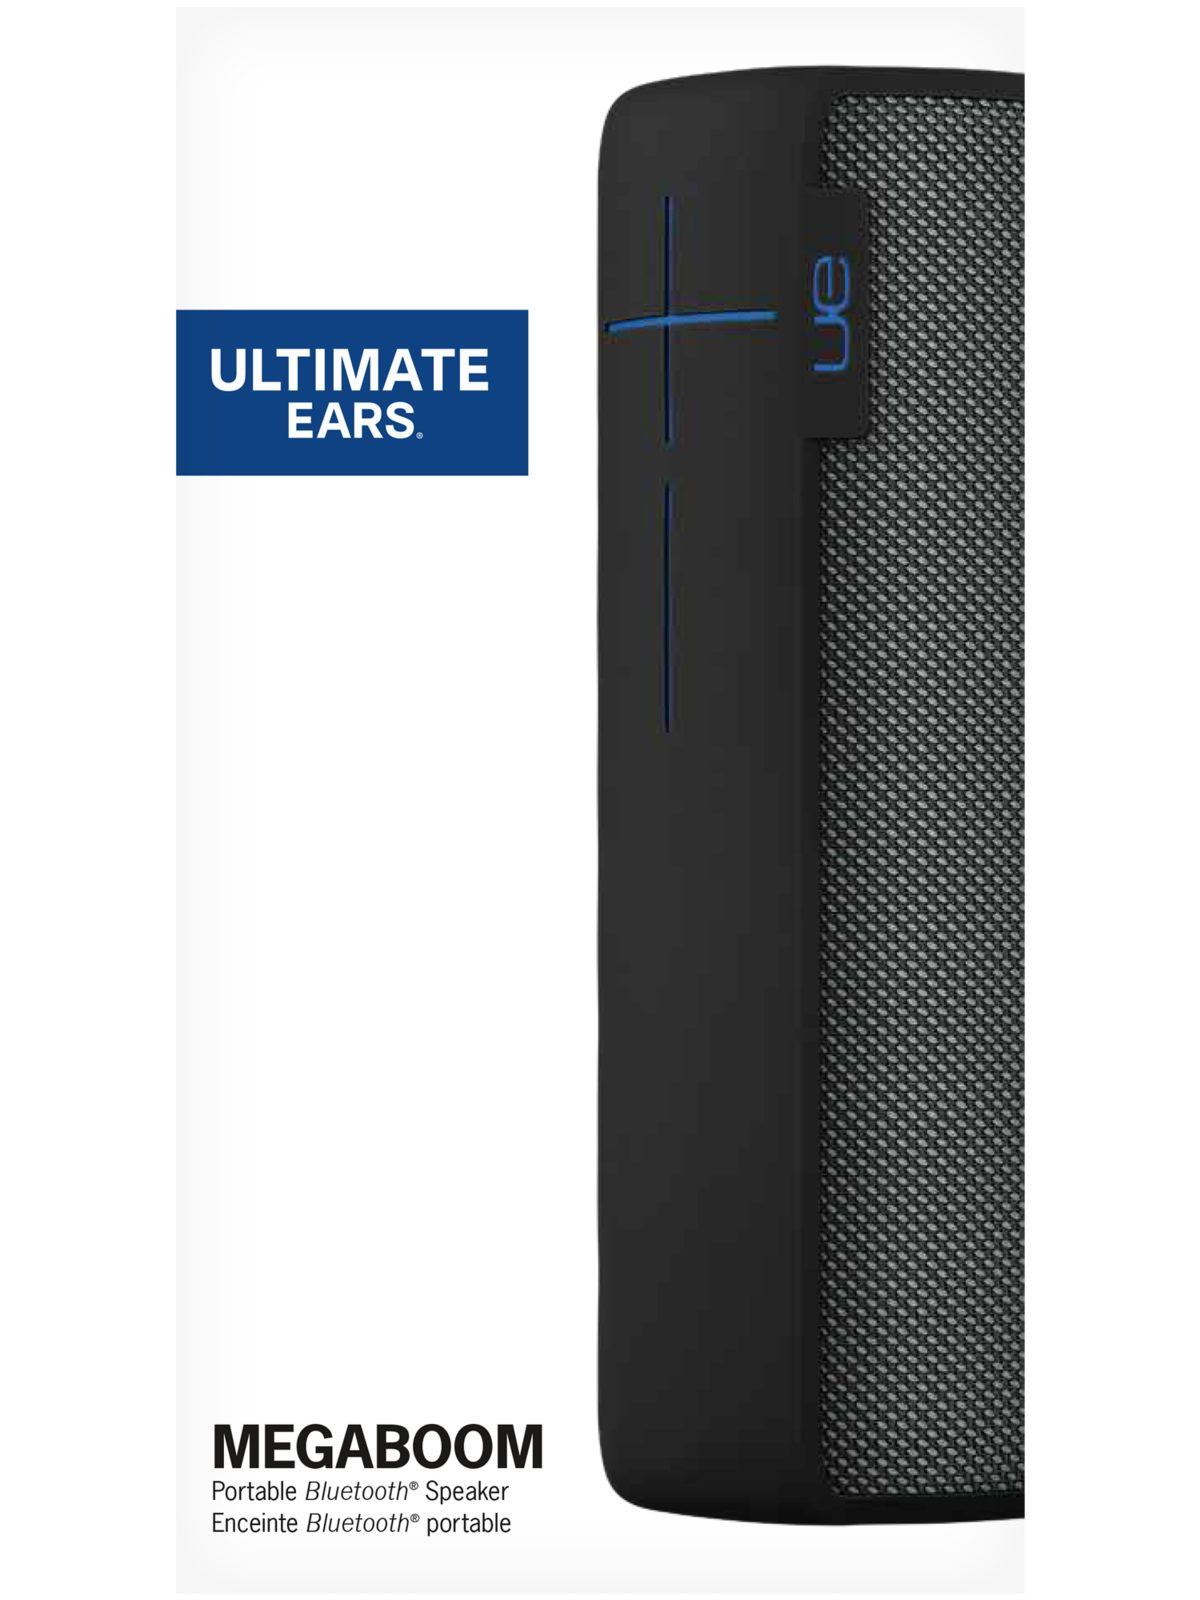 Ultimate Ears MEGABOOM Big Portable Bluetooth Speaker